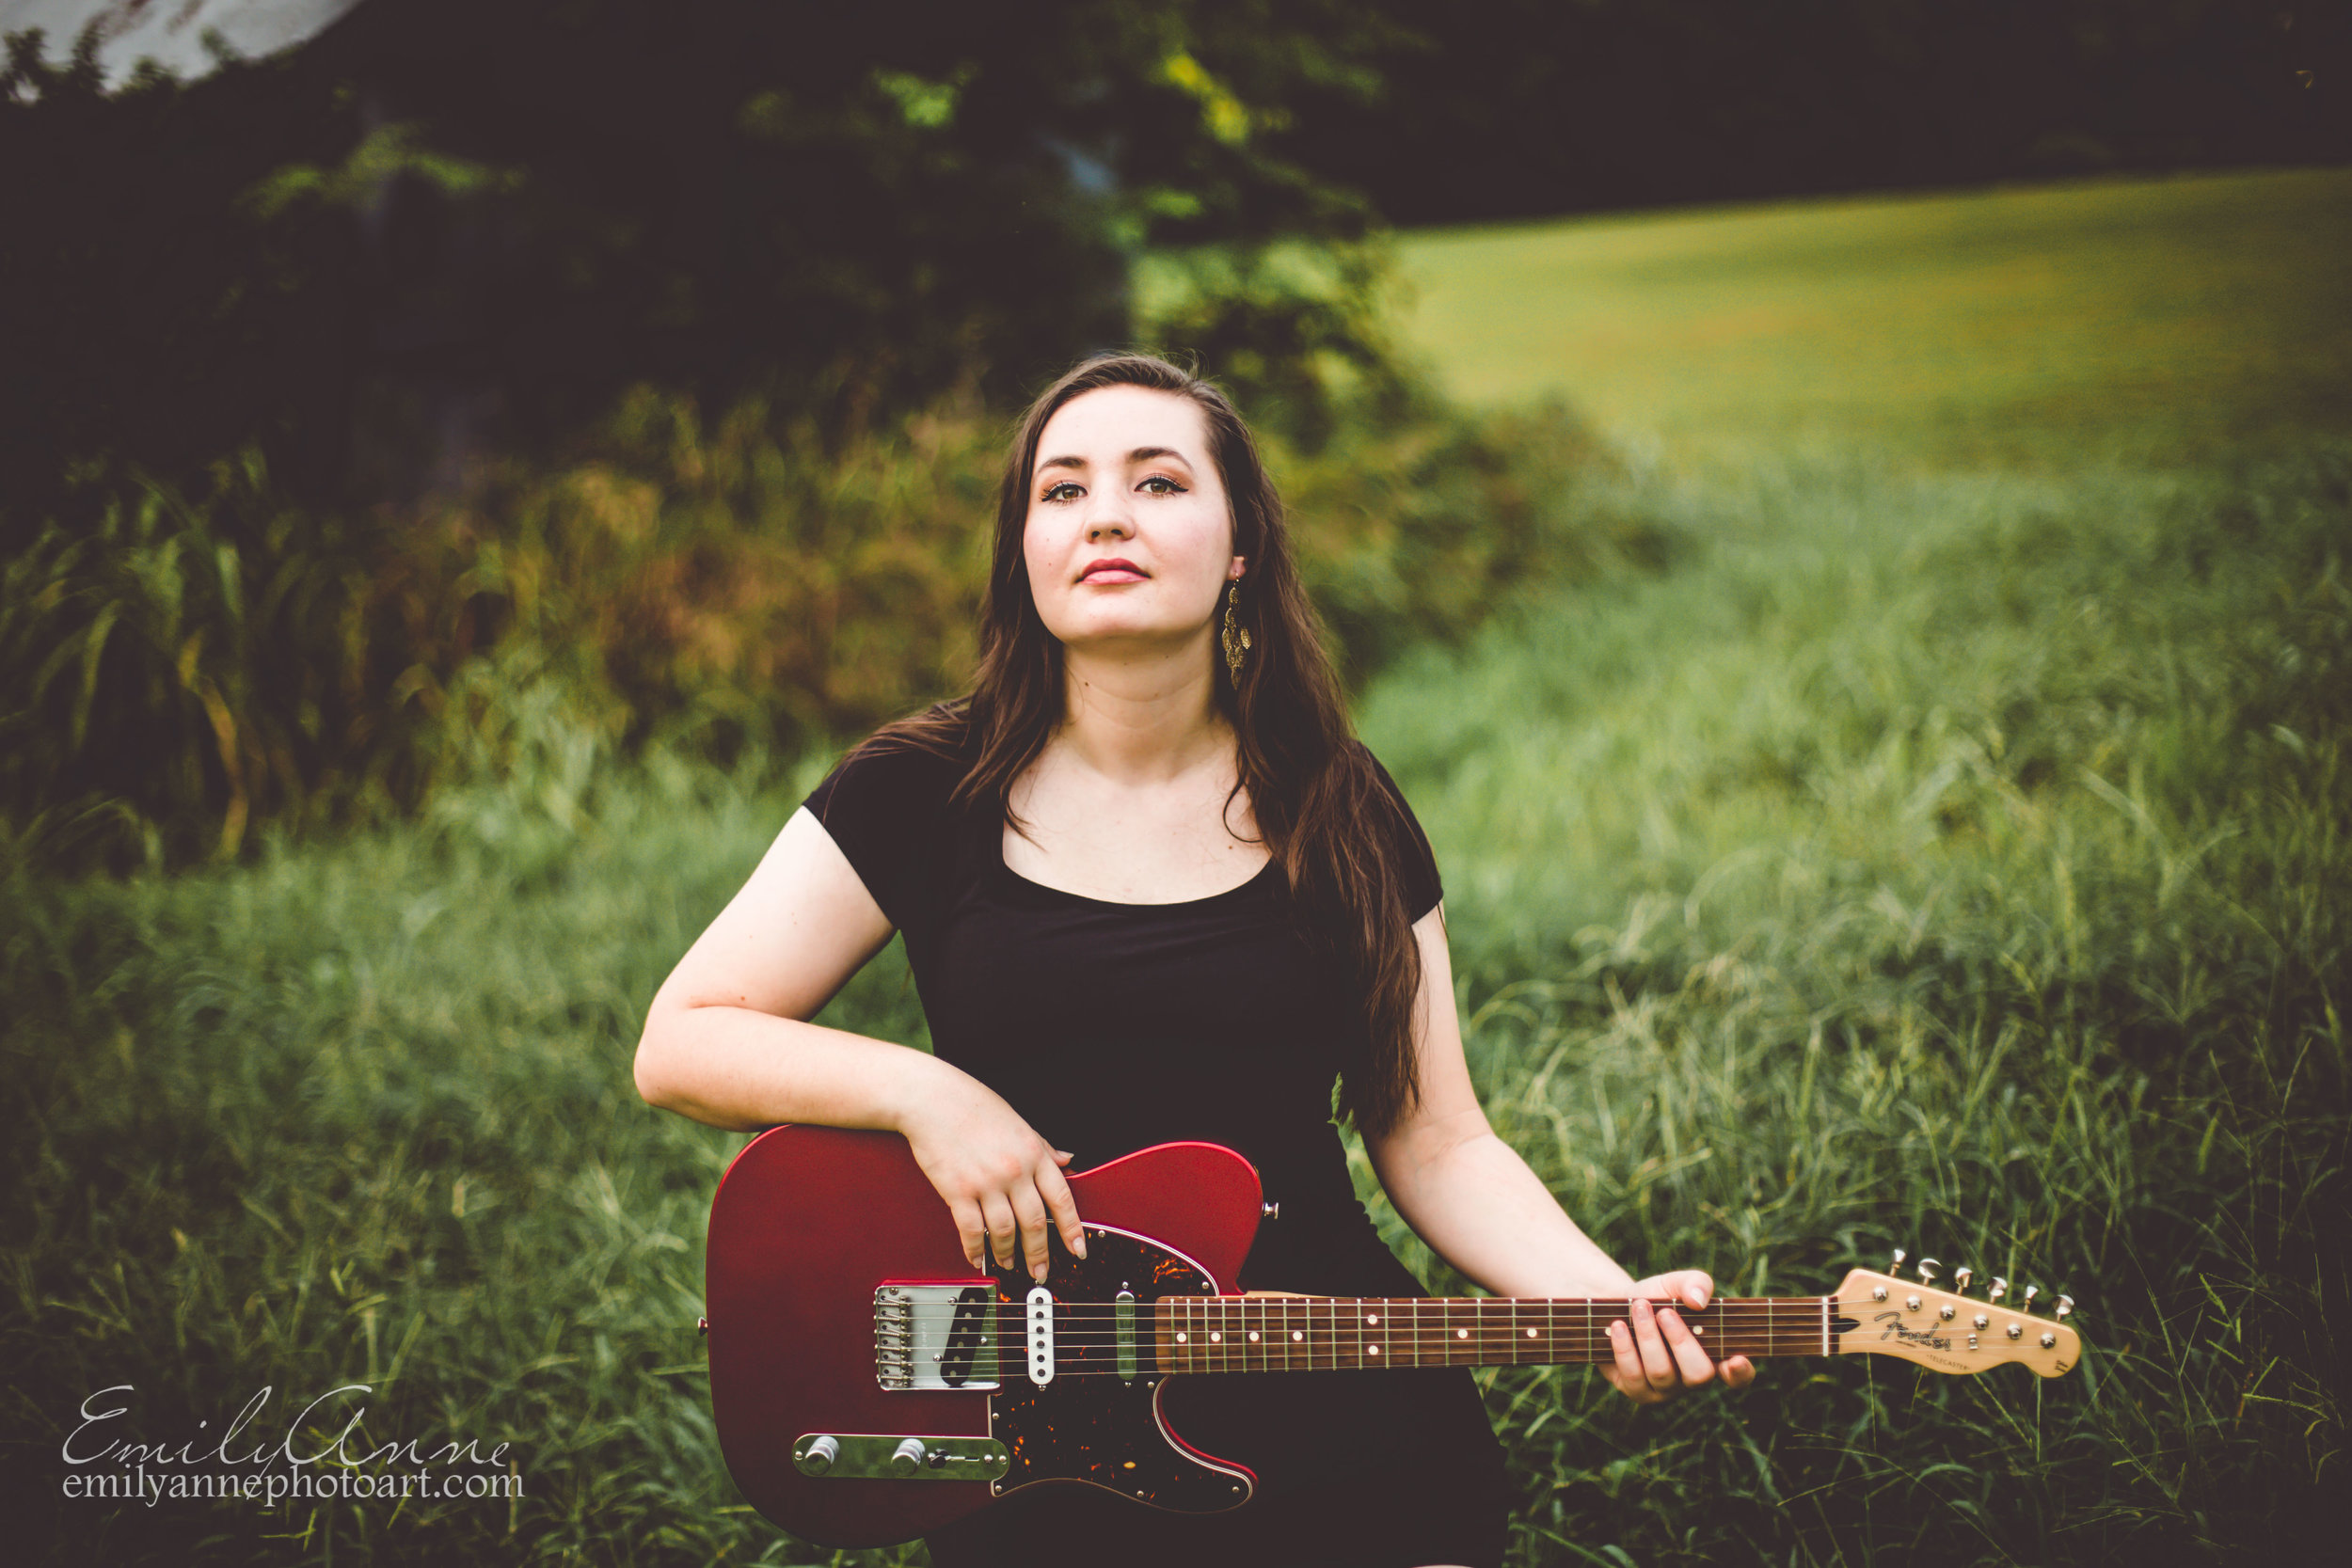 top artist and musician photographer in nashville emily anne photography